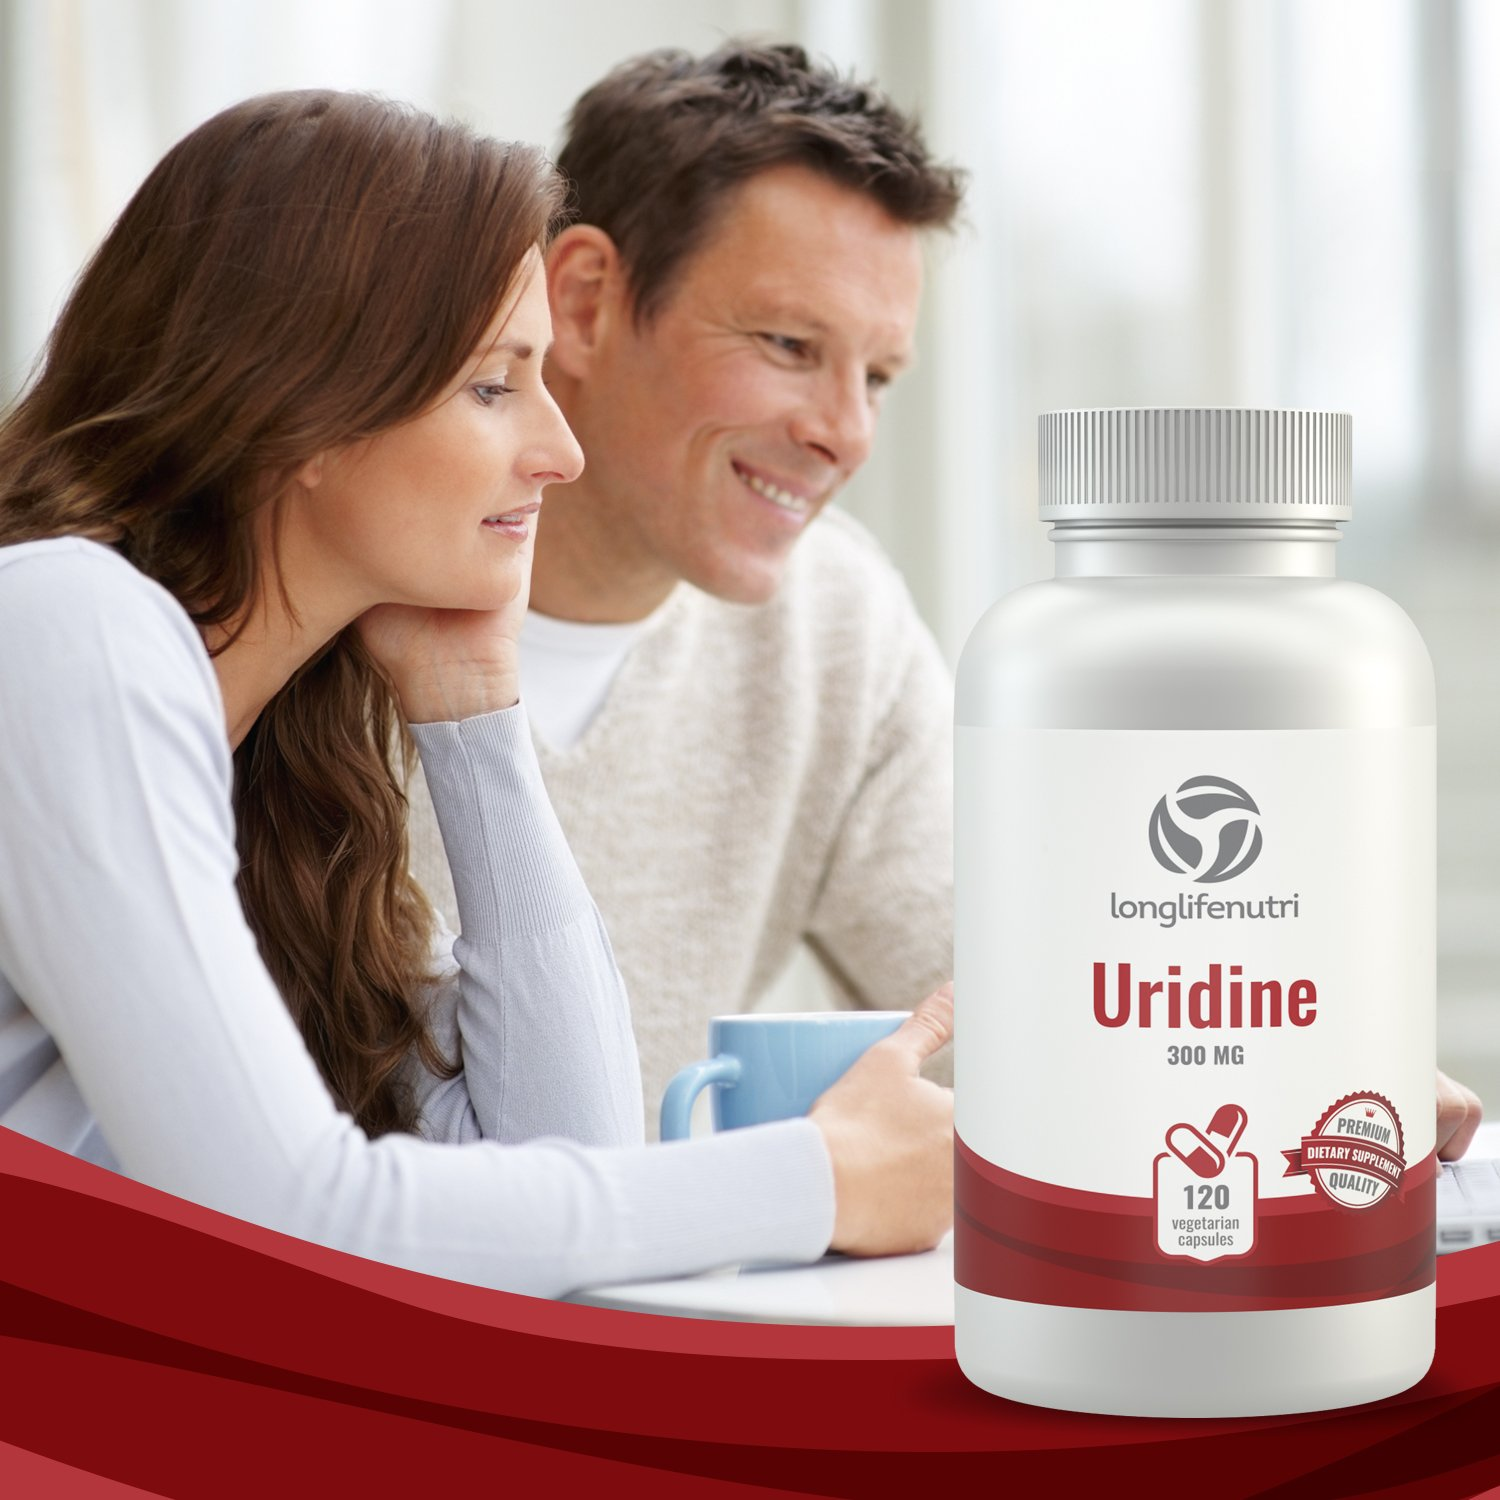 Uridine Monophosphate 300mg - 120 Vegetarian Capsules | Made In Usa | Choline Enhancer | Supports Cholinergic Brain & Memory Function | Helps Synapses Growth | 300 mg Pure Powder Pills Complex Formula by LongLifeNutri (Image #6)